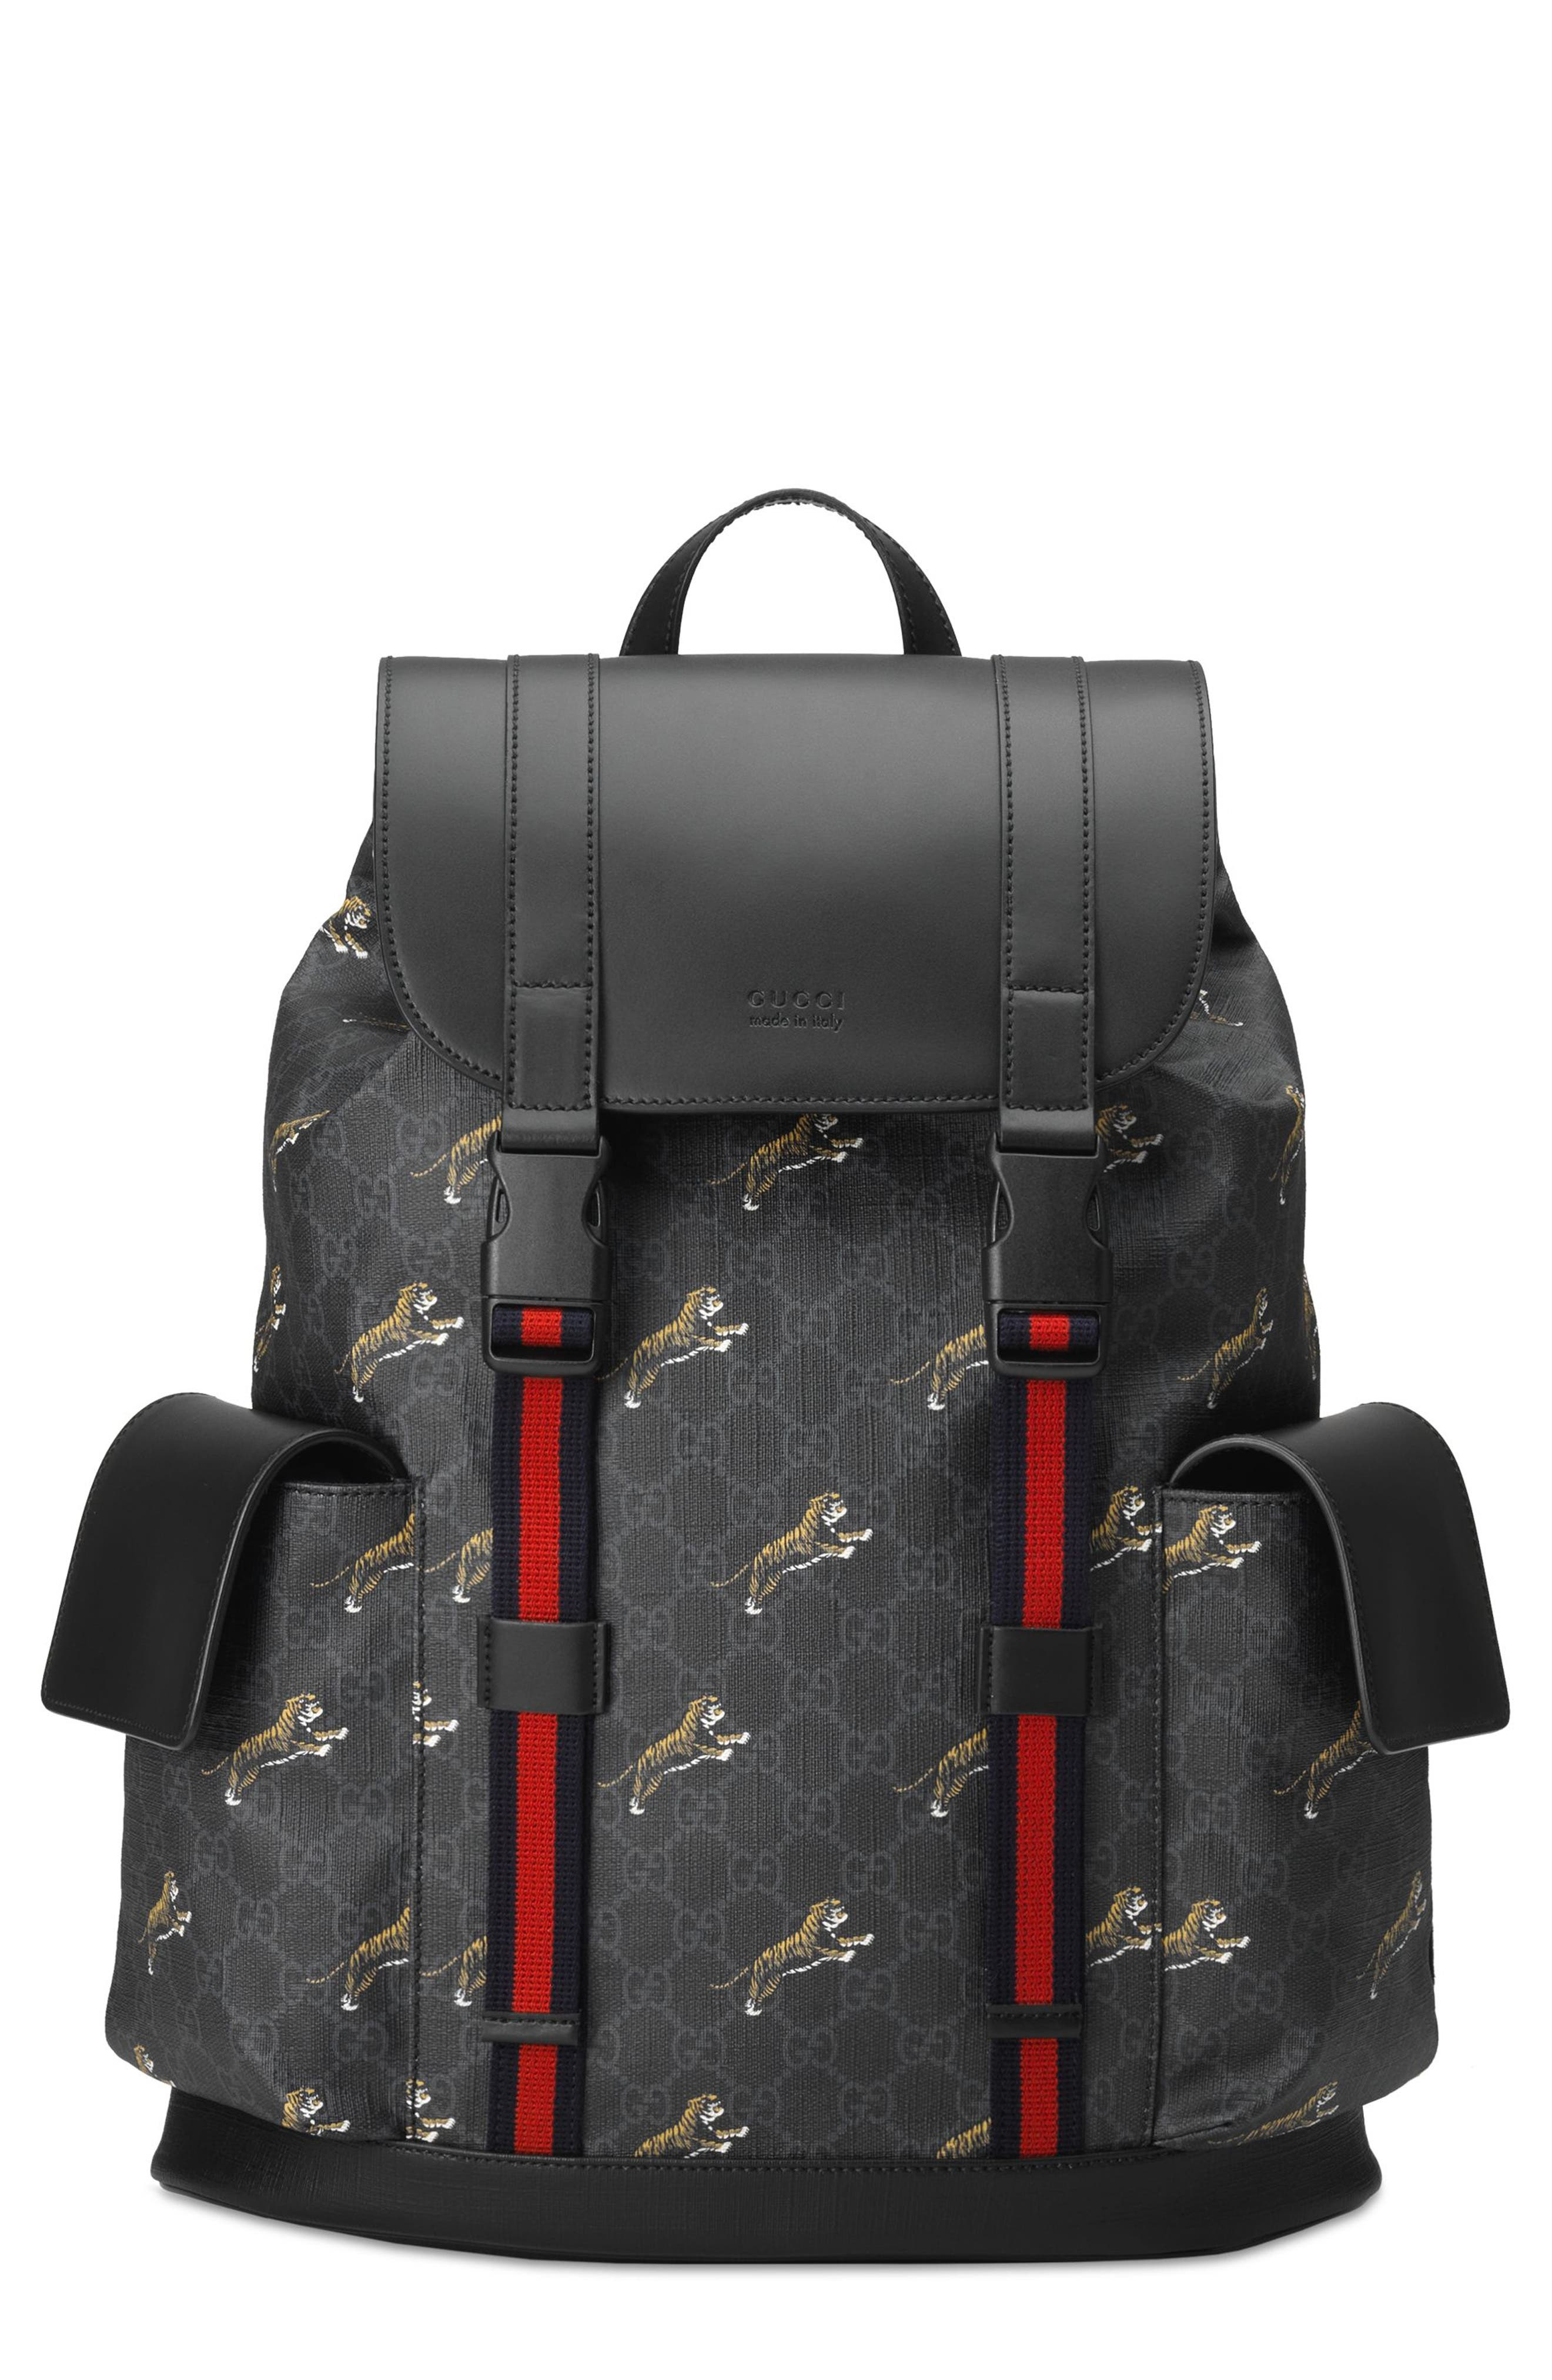 81d2ee9b95a70b gucci backpack | Nordstrom